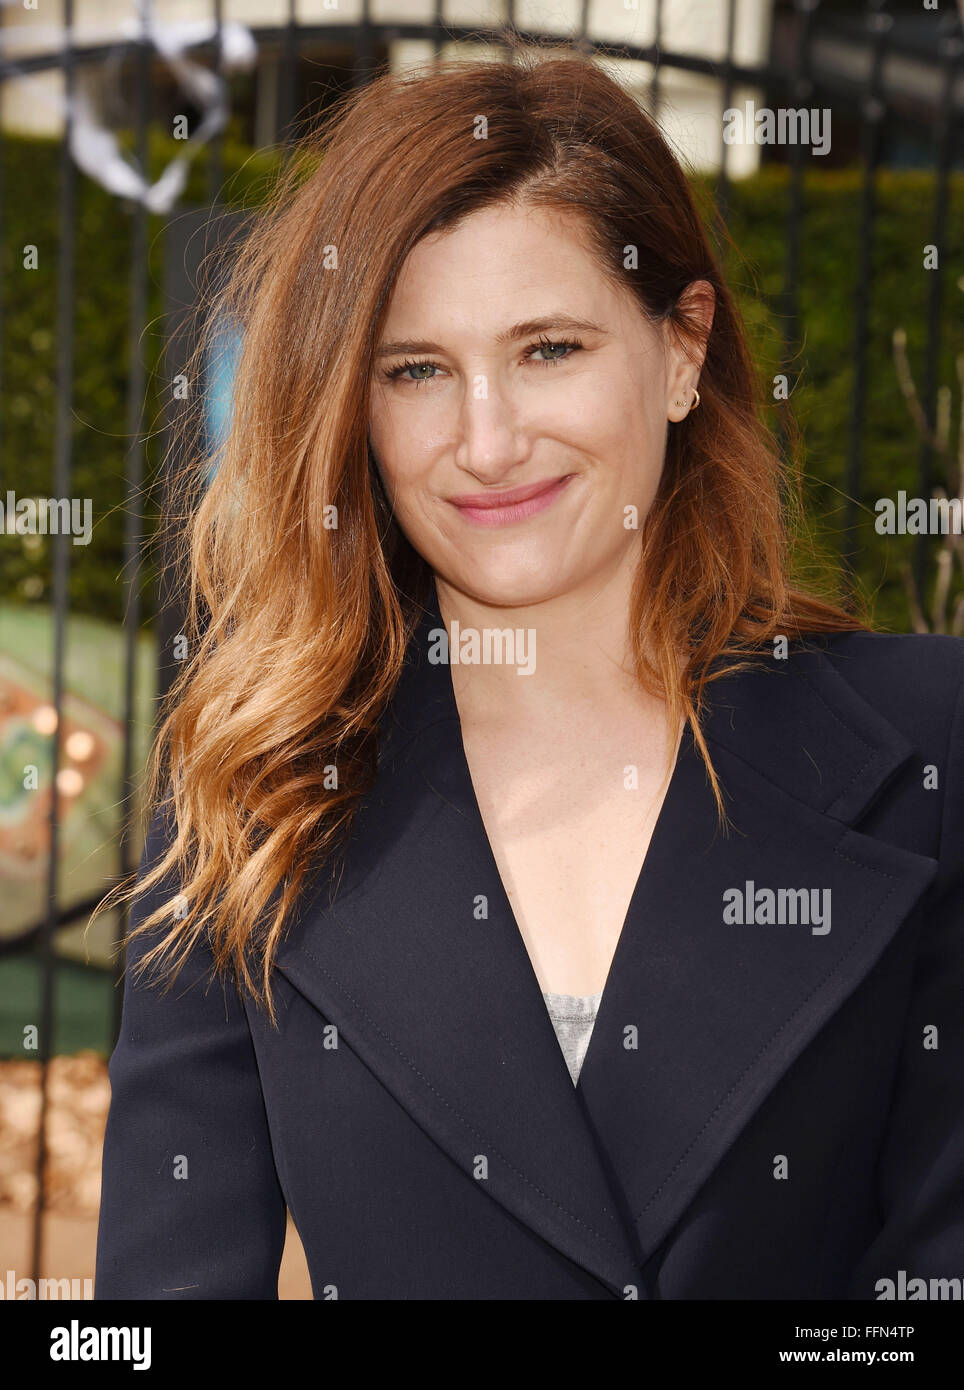 Actress Kathryn Hahn attends the Premiere Of Sony Entertainment's 'Goosebumps' at the Regency Village - Stock Image